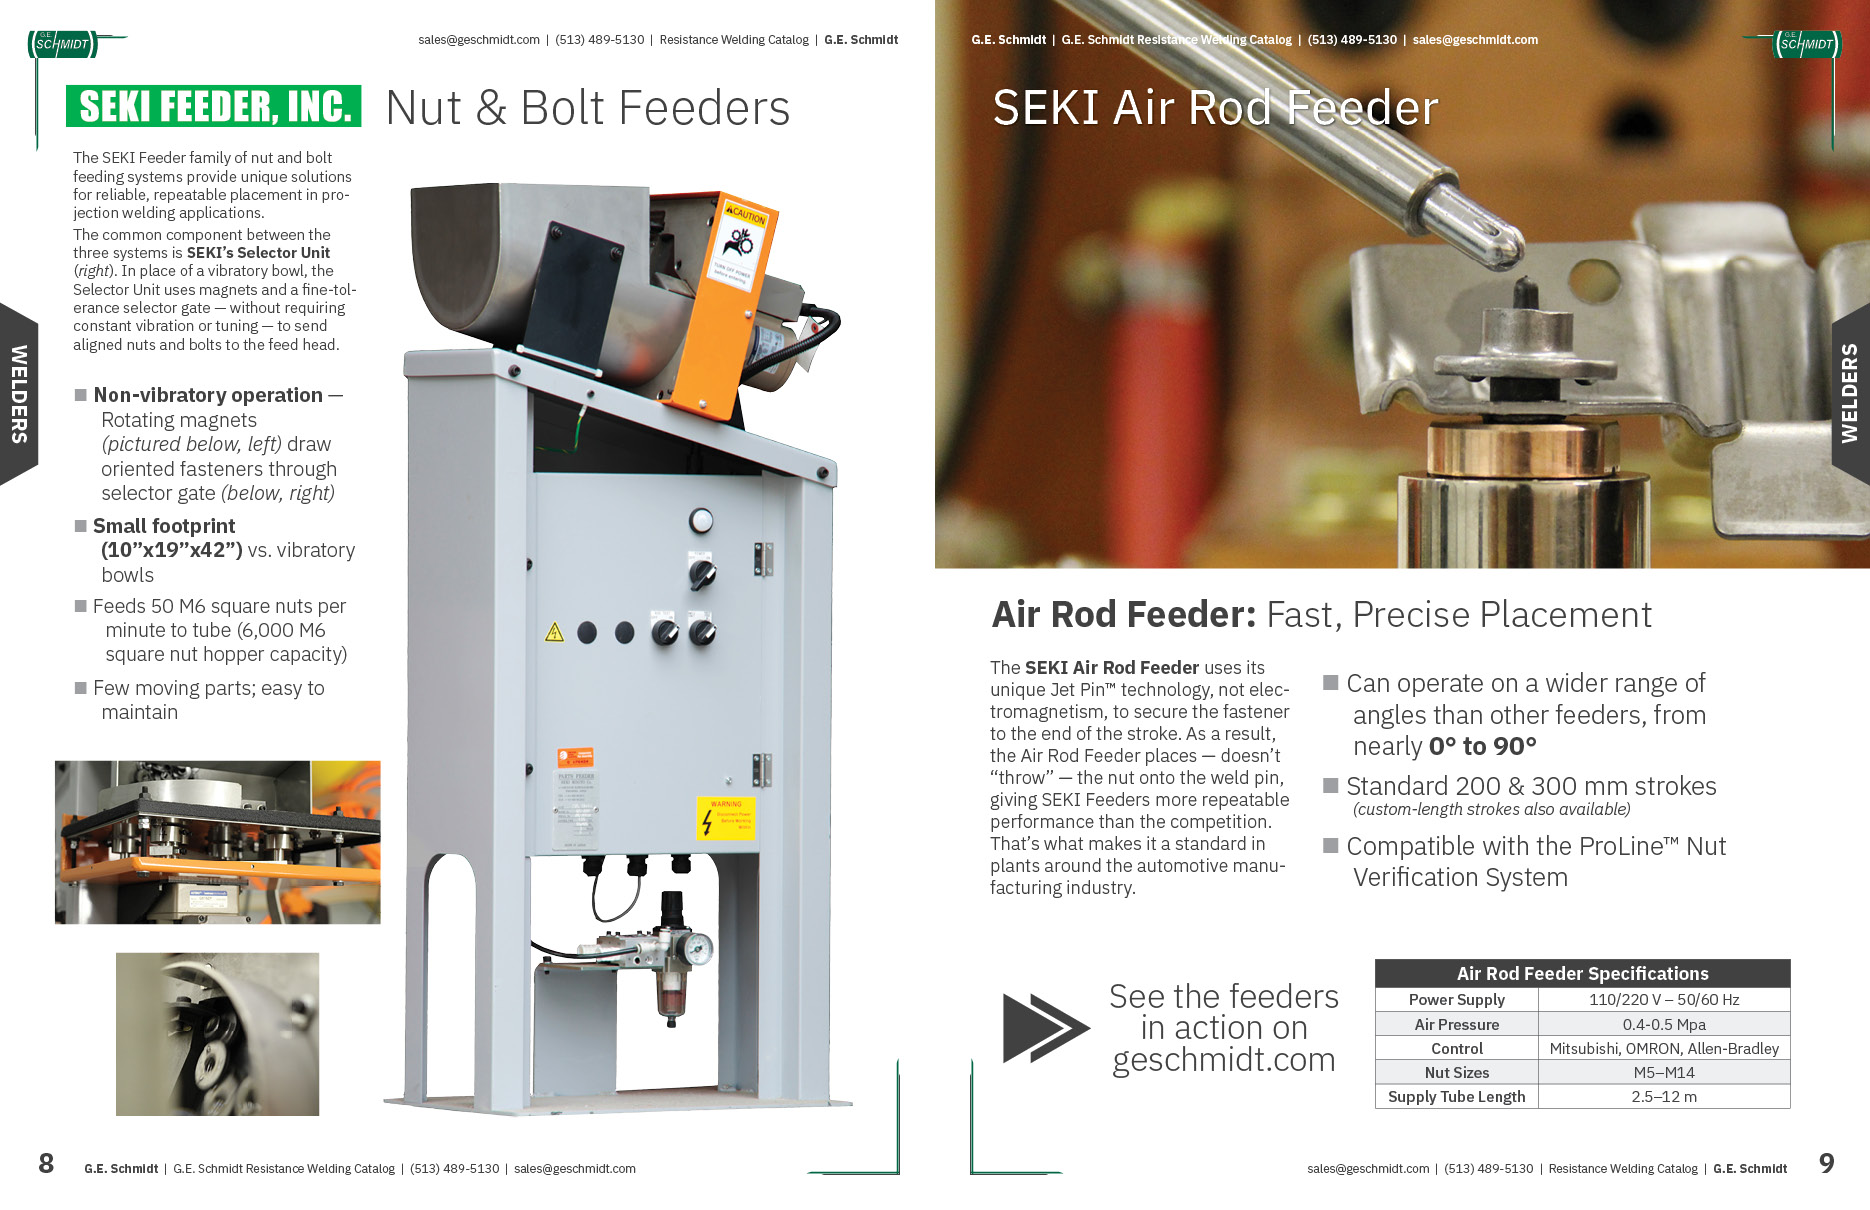 SEKI Nut and Bolt Feeders in the G.E. Schmidt Catalog